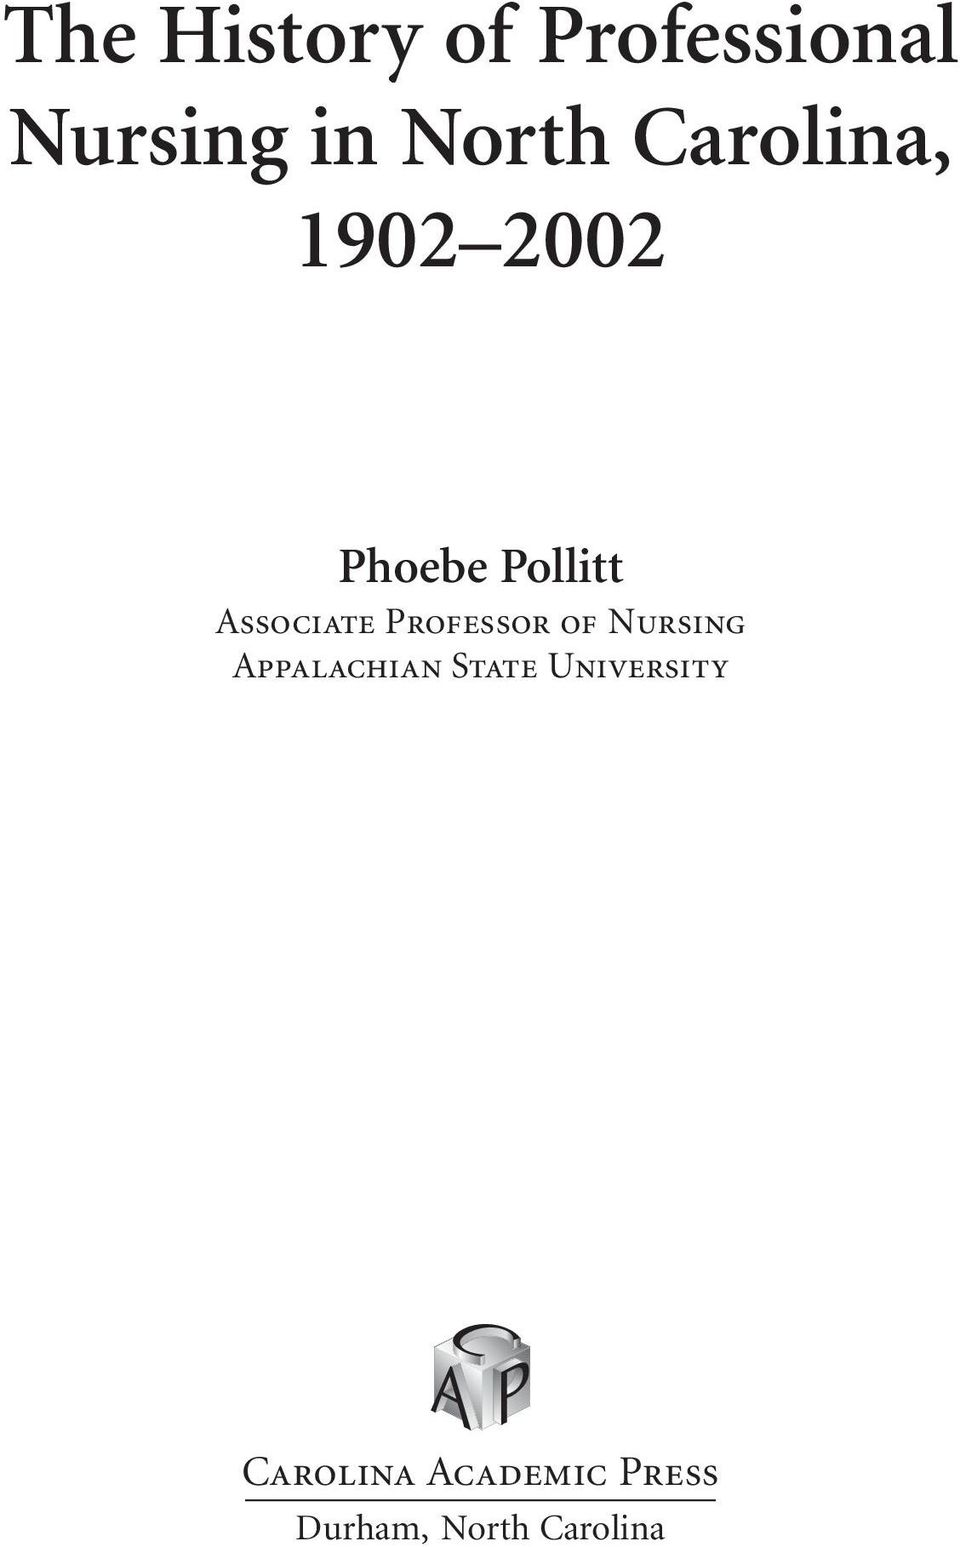 Professor of Nursing Appalachian State